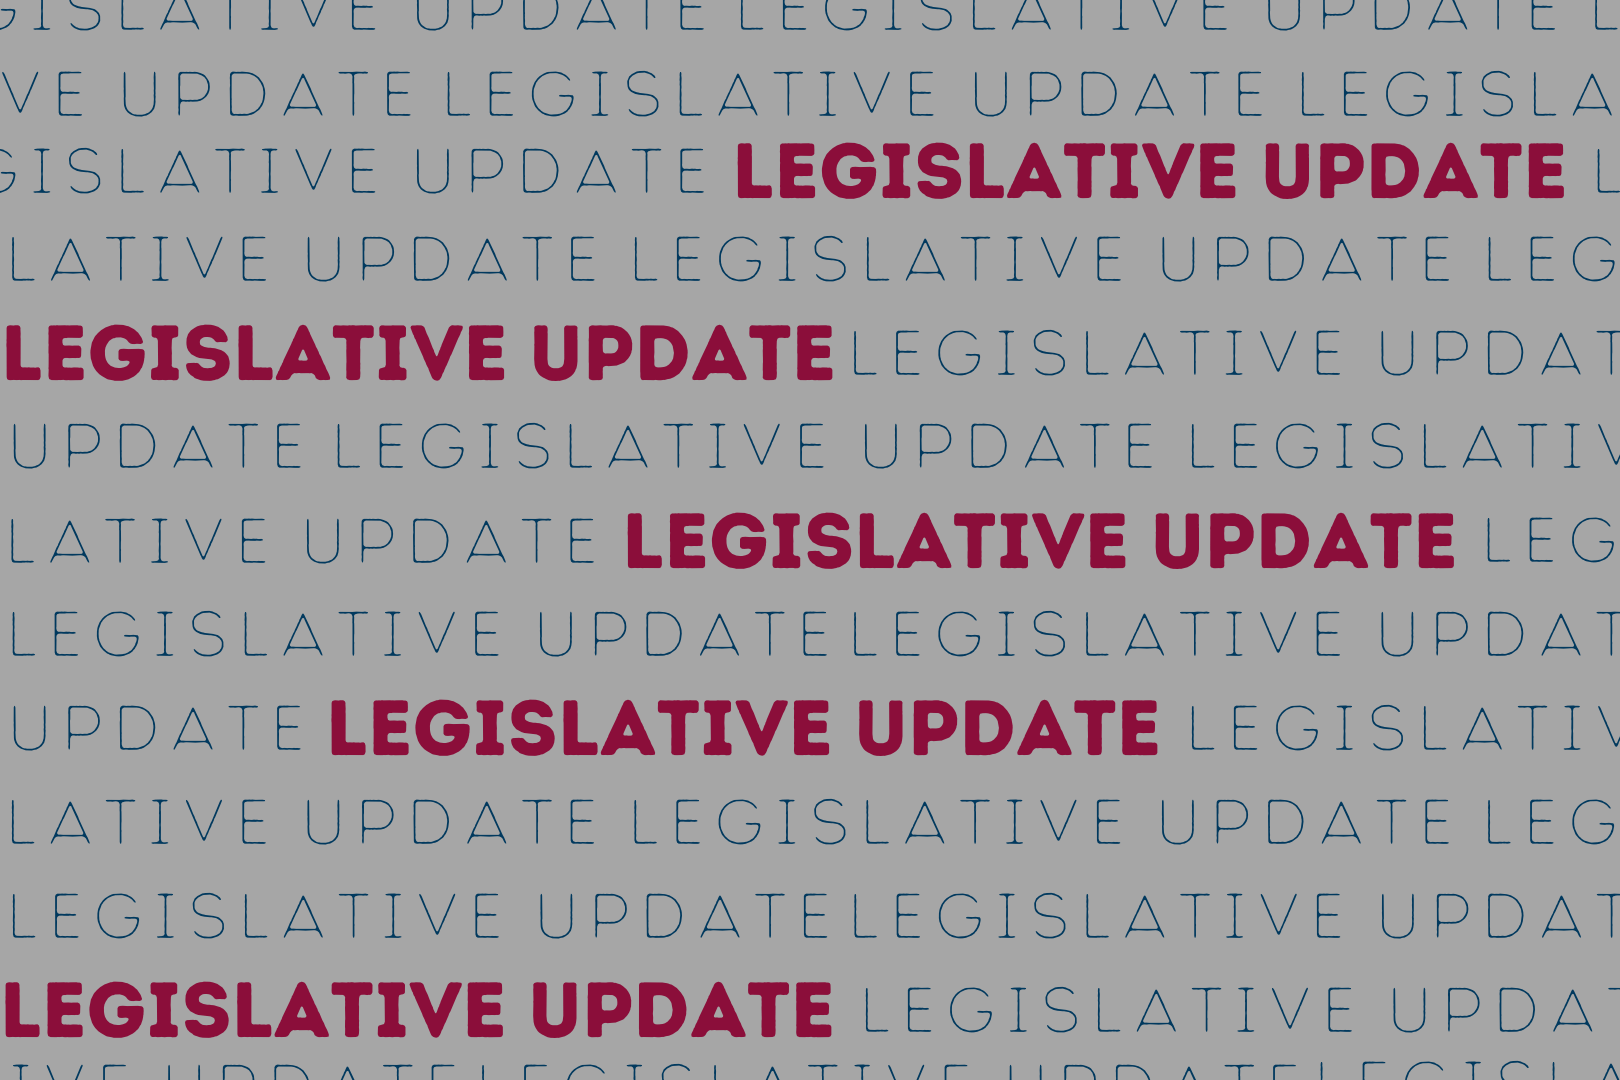 Legislative Update Featured Image